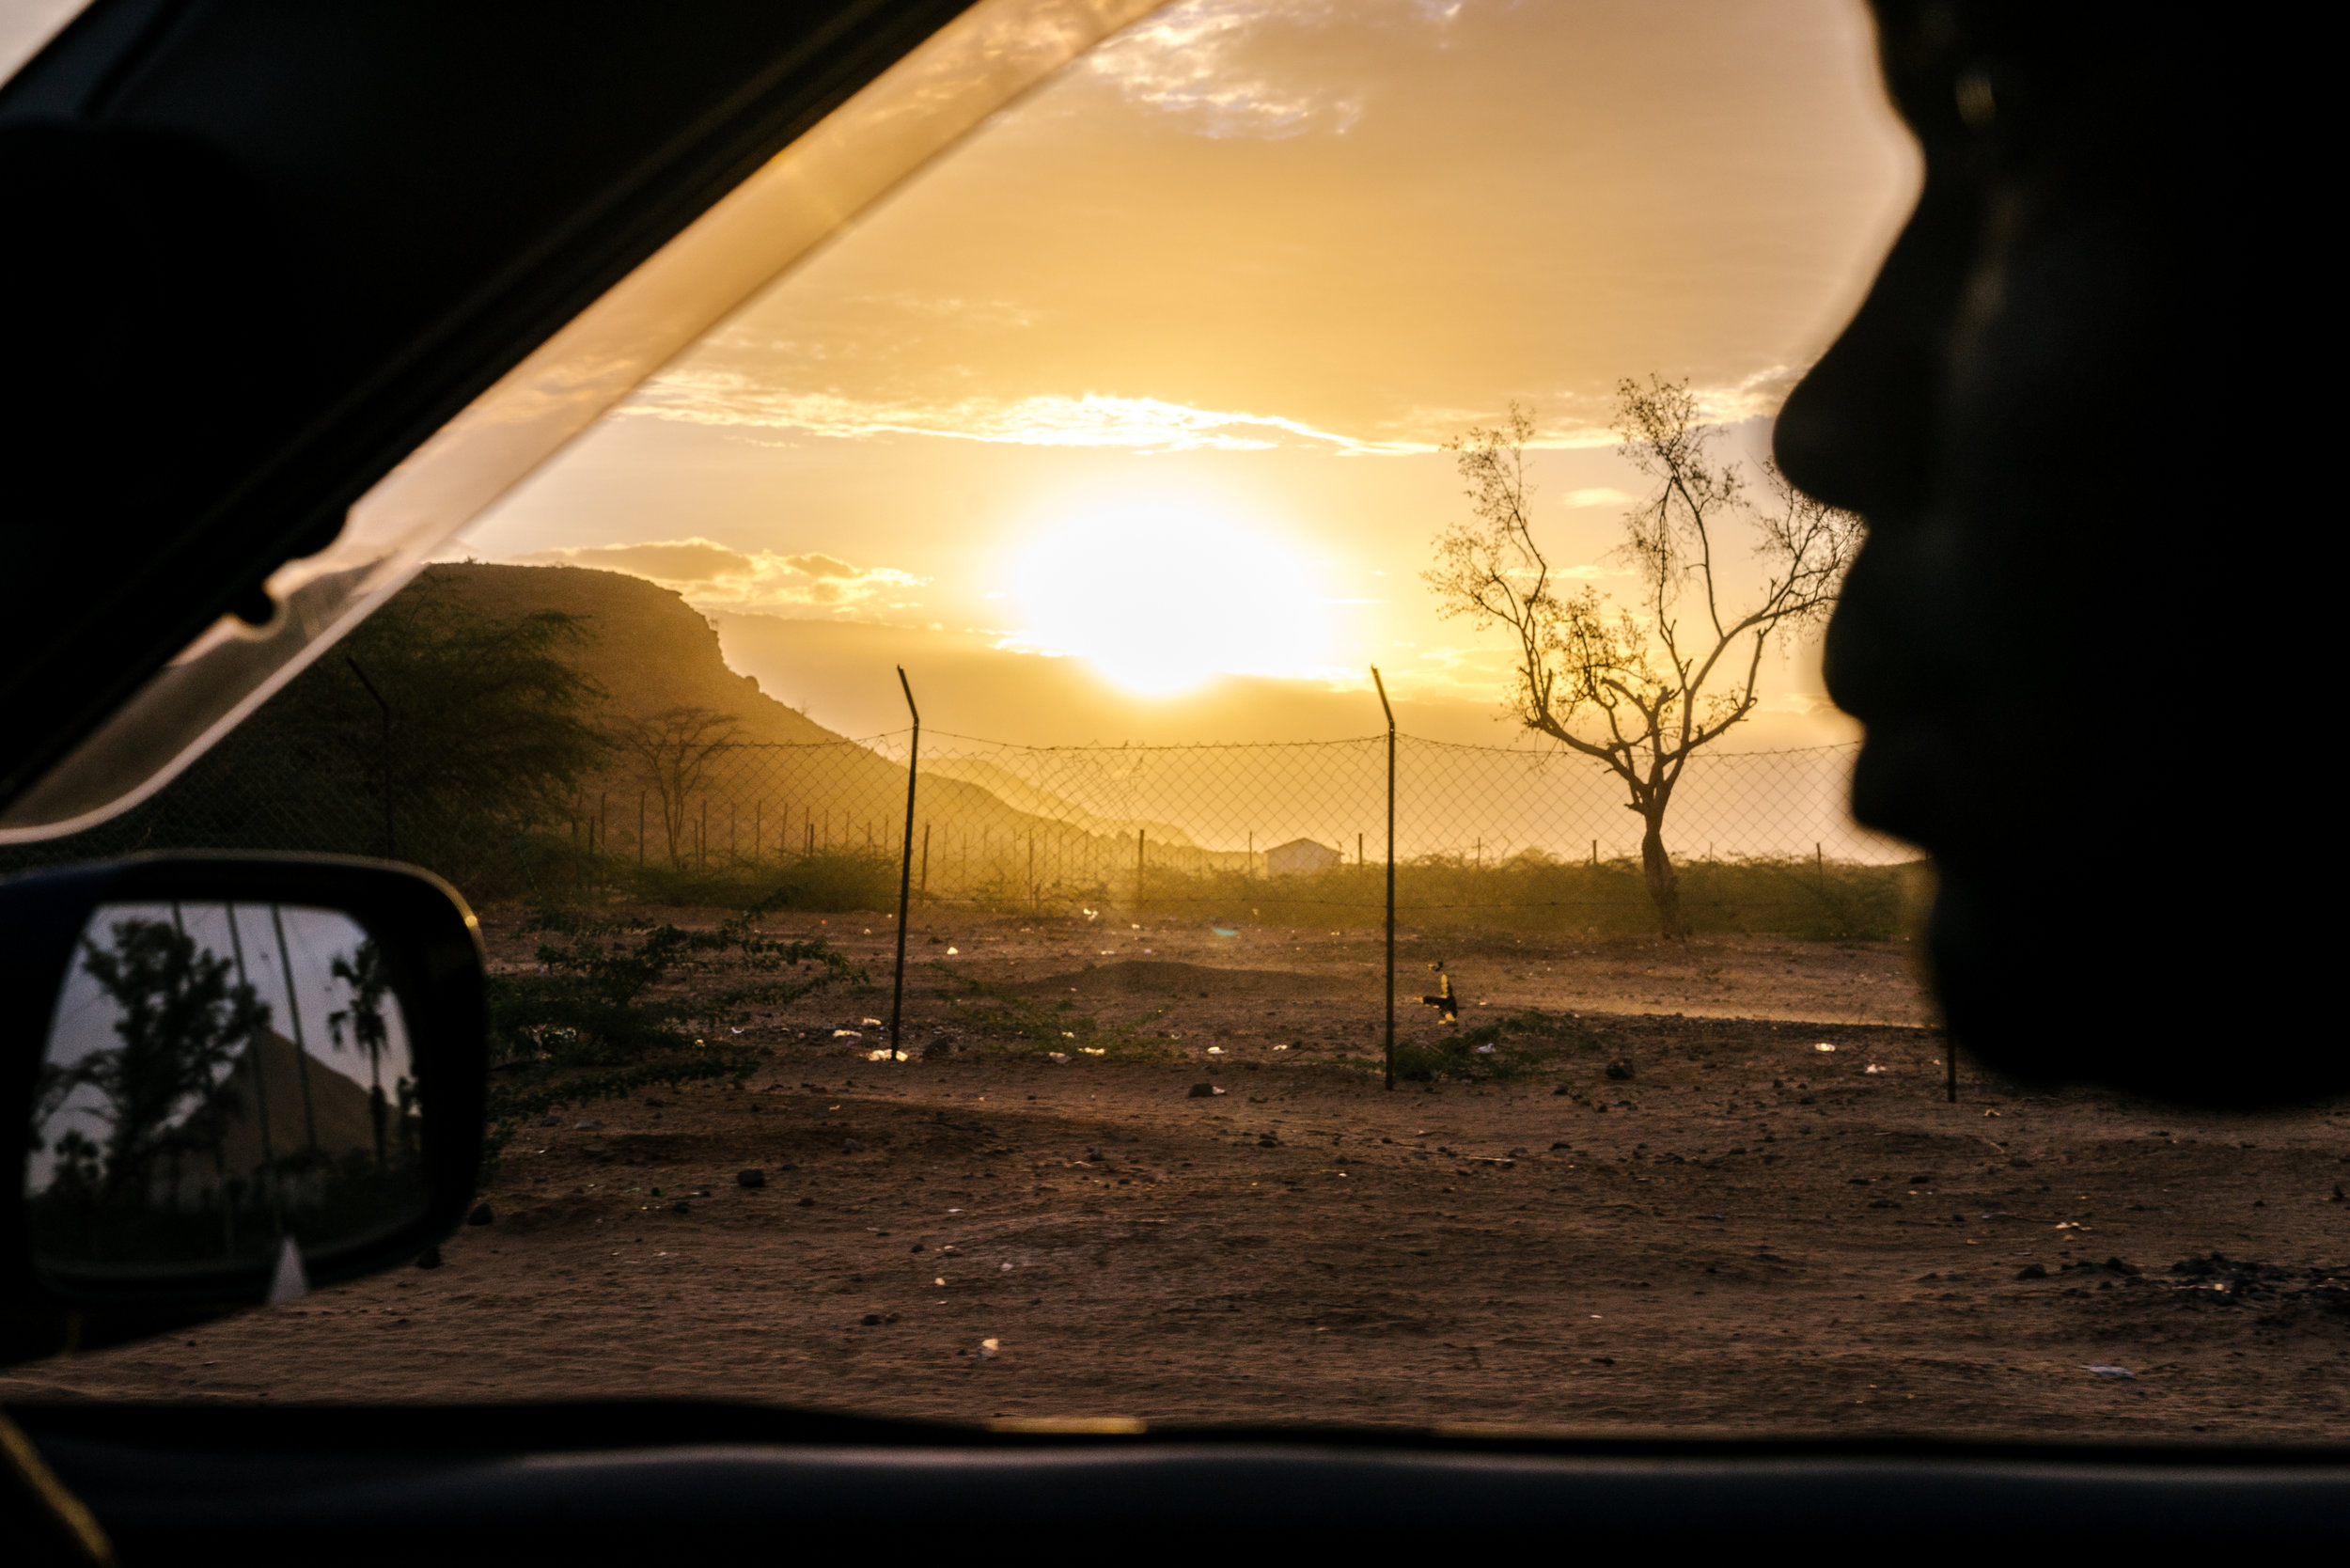 The sun sets over Lodwar, in northwestern Kenya, near where the Kakuma Refugee Camp is located. Kakuma is home to 182,000 refugees from all over the region, including many homophobic countries. Around 100 LGBTQ refugees from Uganda also call it home.